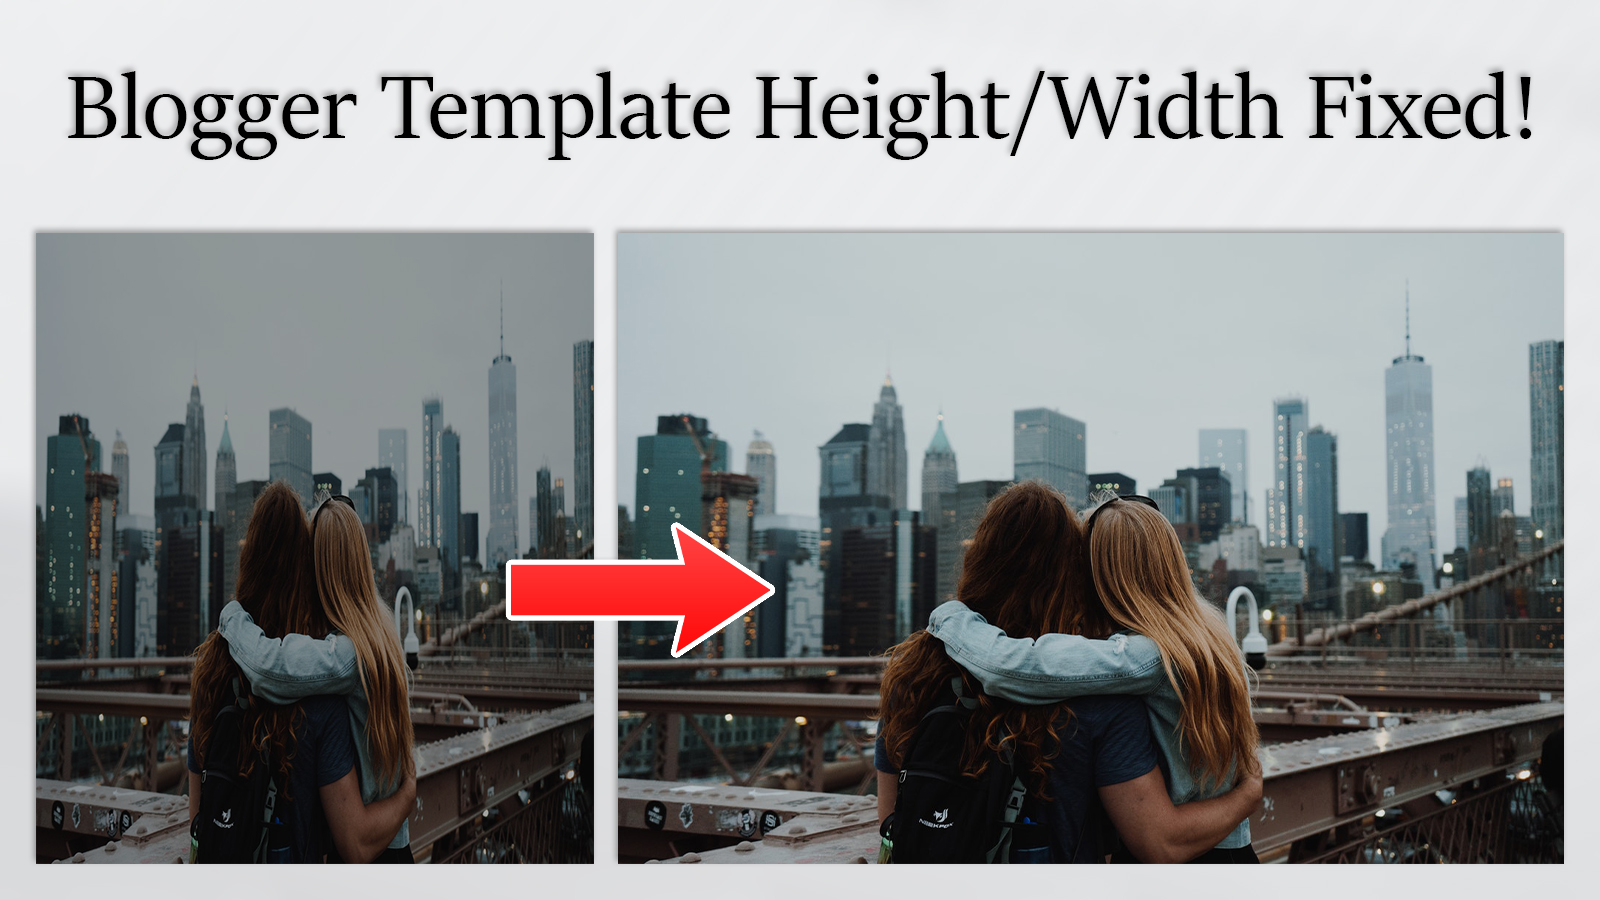 How to Fix Image Height Problem and Photo Strech Error in Blogger Template. Solved!  fix,image,same height images,image width and height,fix image quality,fix low contrast image,to fix underexposed image,how to fix low contrast image,fix image stretch wordpress,fix image quality on transform,height,fix image quality on transform css,hot to fix low contrast color image,fix image quality on transform css3,hero image,fixing images,image issues,images,rgb image,bgr image,shoulder height,color image,how to use the image widget,how to fix headlight level,image widget blogger,fix blogger image,how to customize blogger image,stretch images in blogger,image issue fix in blogger,fix blogger images issue in 2020,fix blurry images on blogger,blogger image issue,how to fix blogger image issue,images are not showing in blogger,how to fix blurry image in blogger,how to fix blogger images issues,fix blogger images uploading issue,how to fix blurry images in blogger,how to fix blurry images on blogger,blogger image,blogger image blurry,blogger tutorial